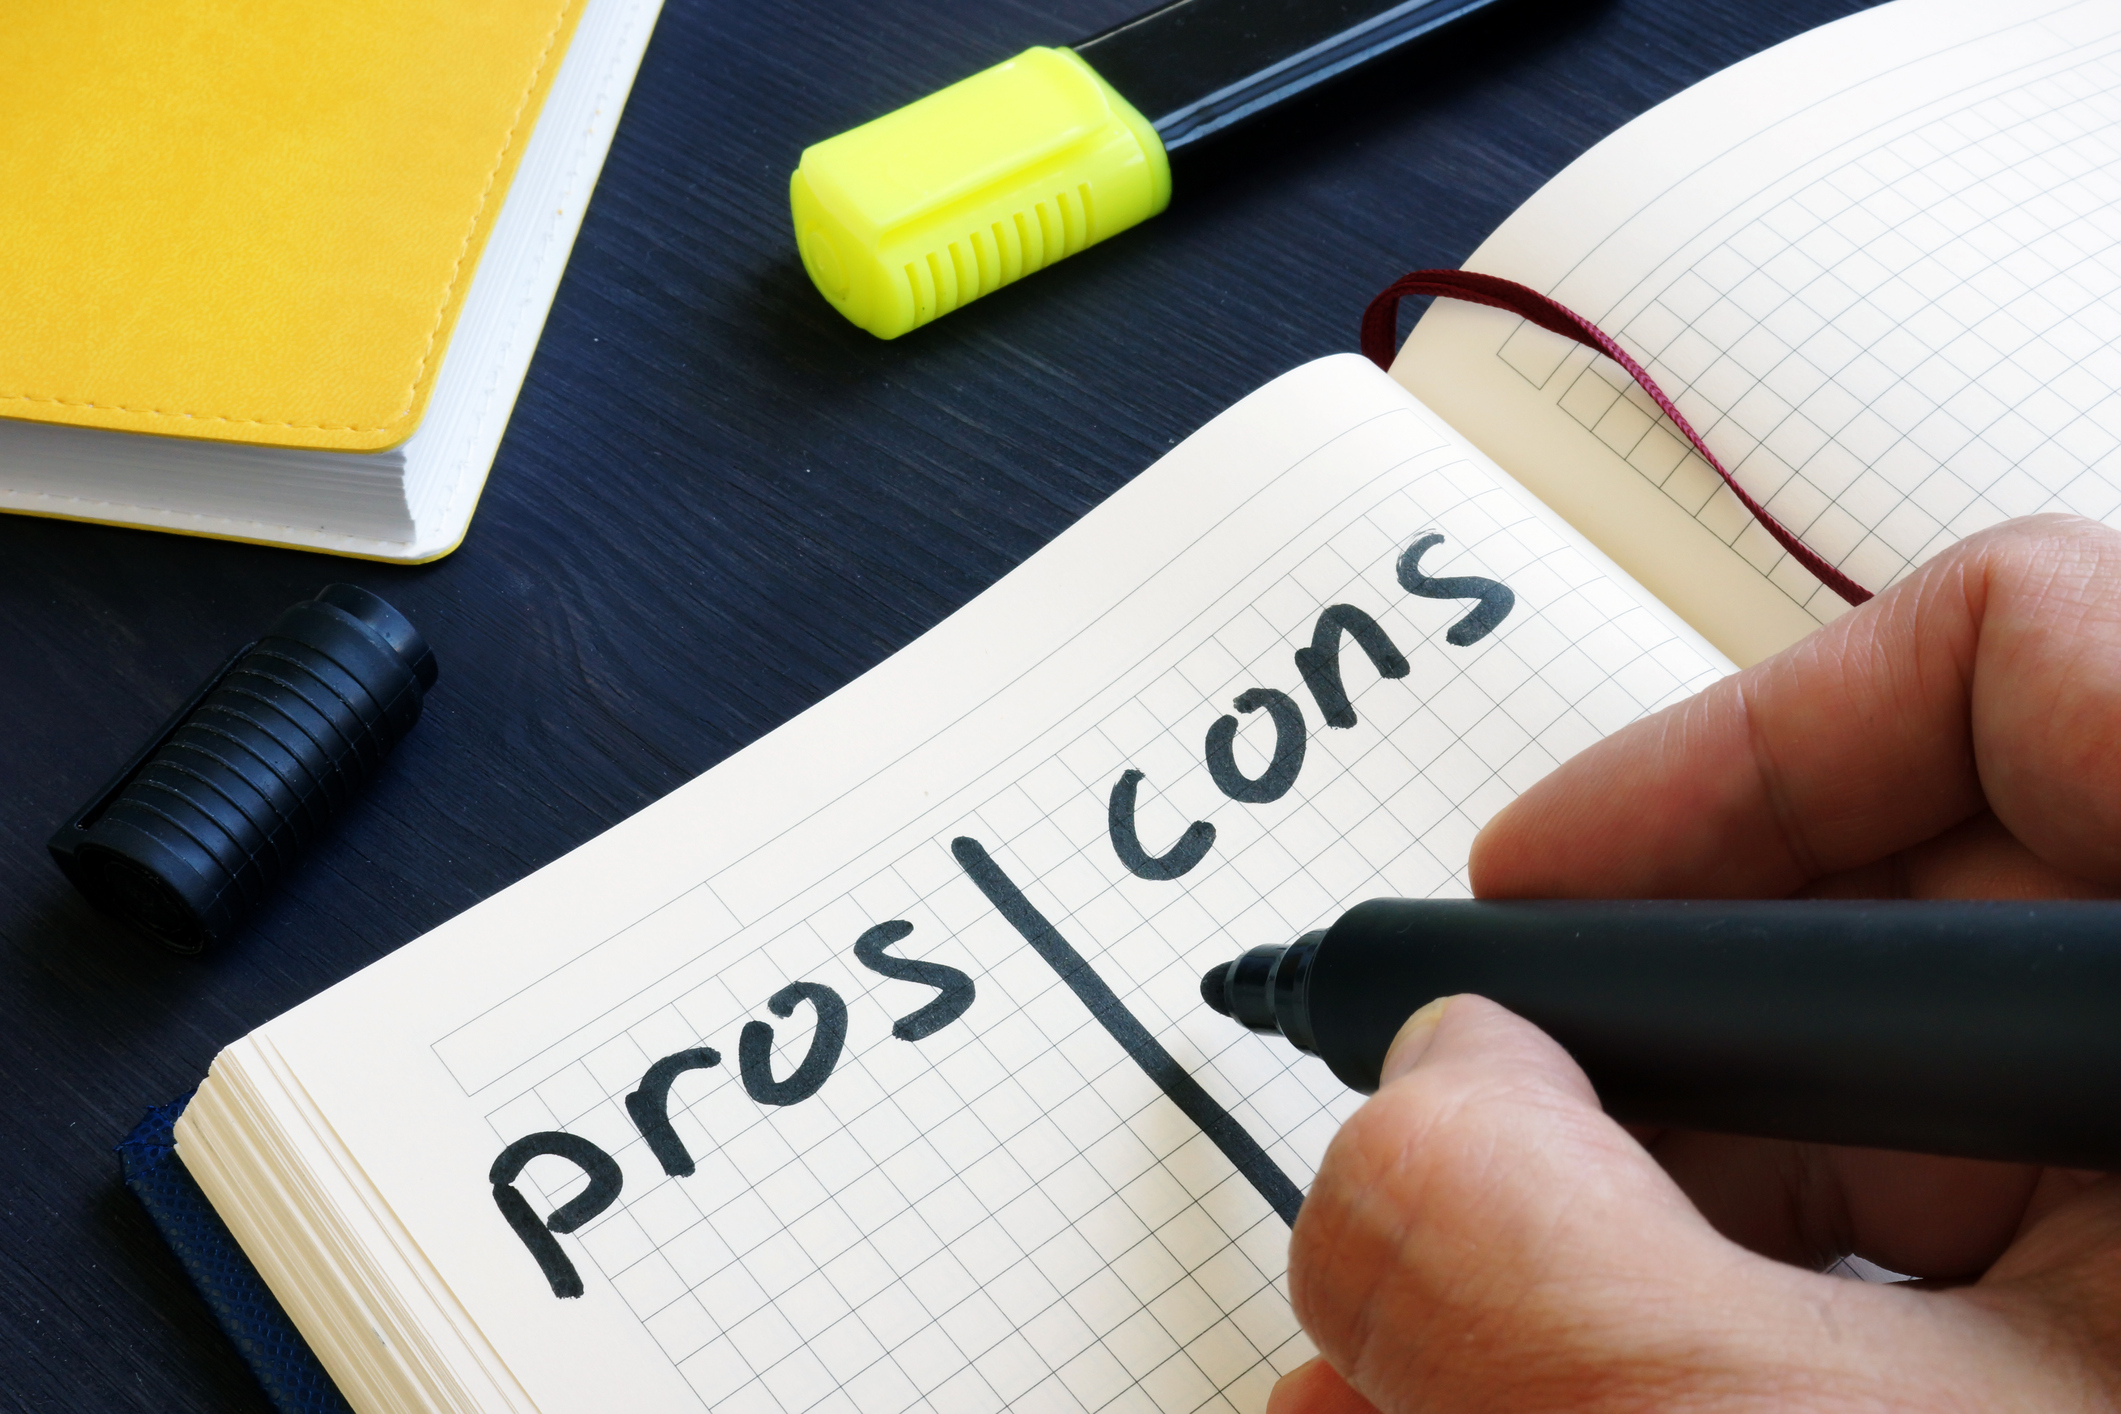 pros and cons.jpeg